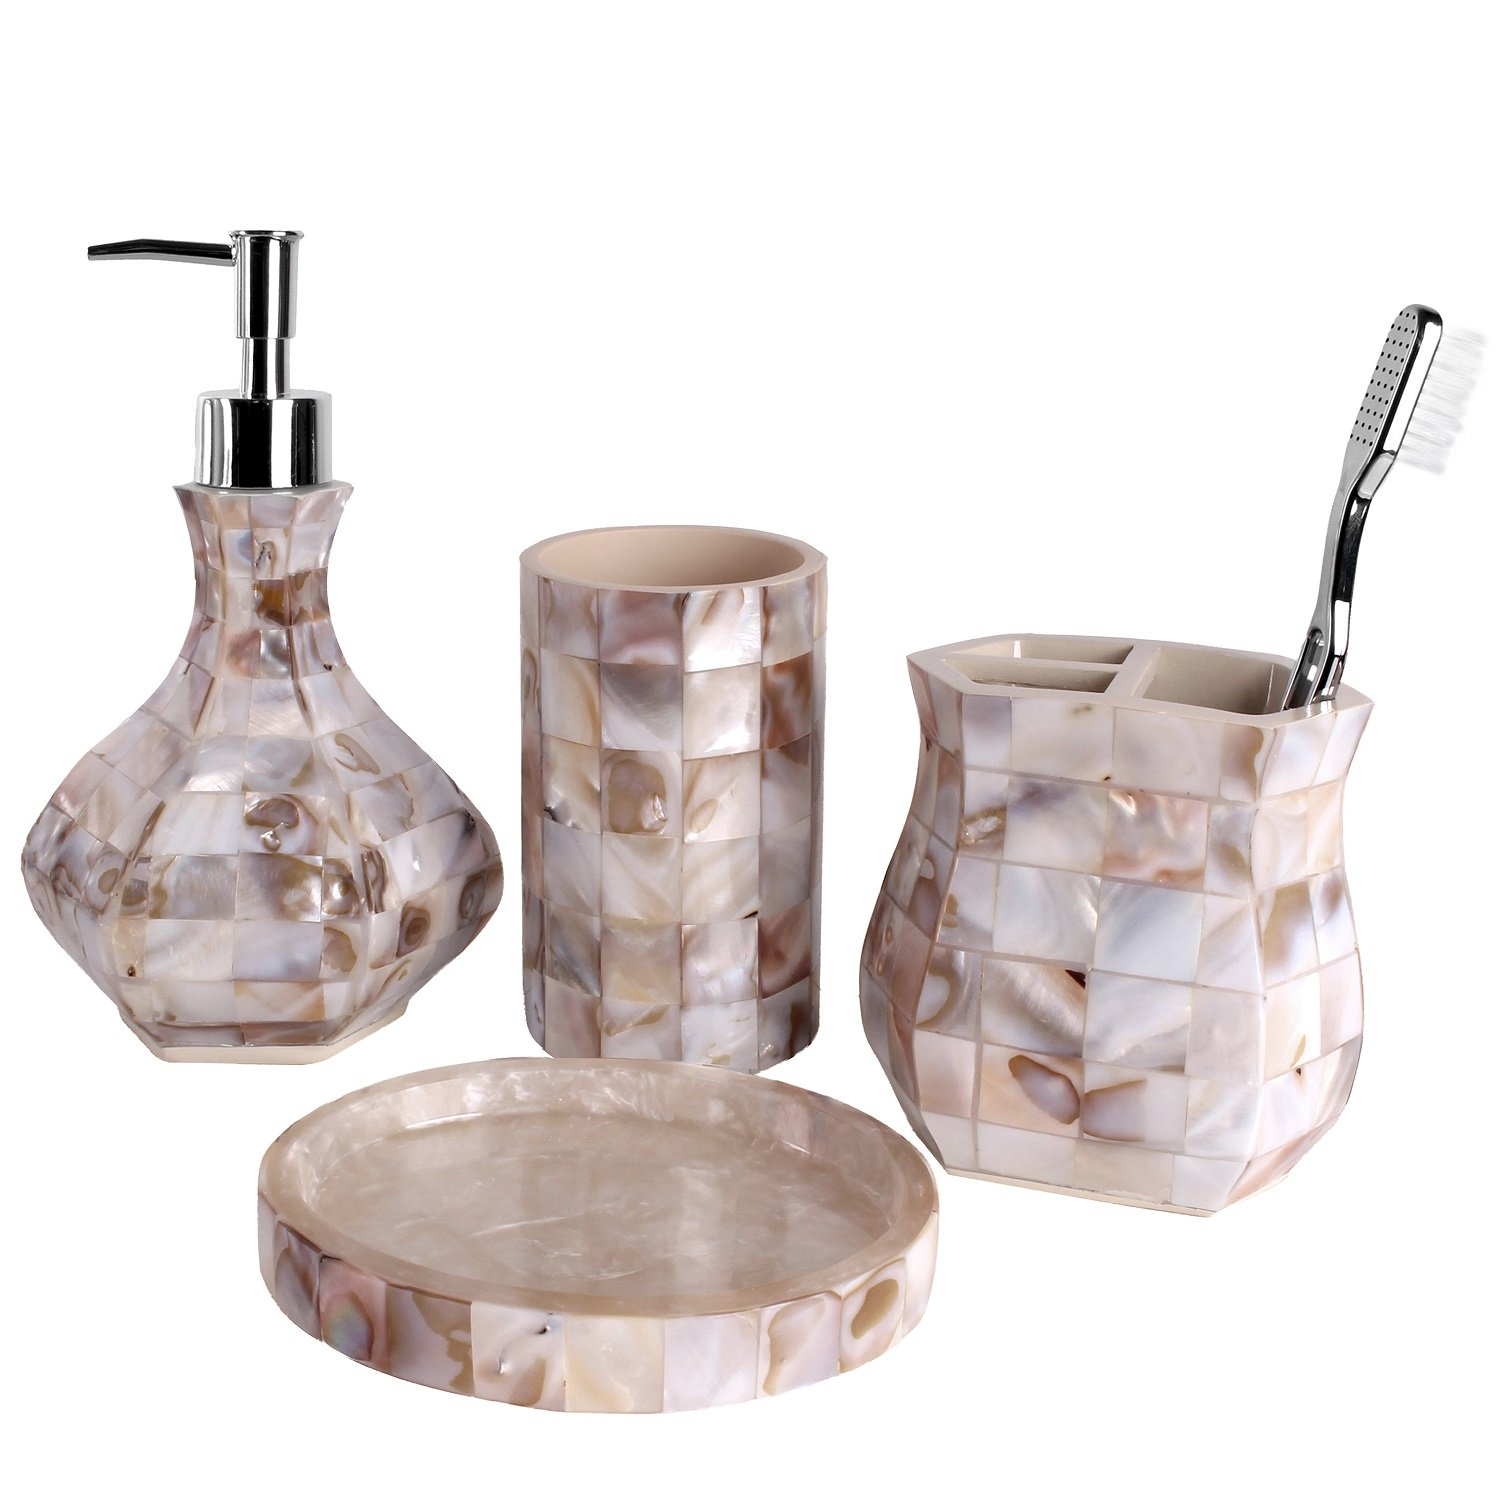 Amazon.com: Creative Scents Milano Bath Ensemble, 4 Piece Bathroom ...